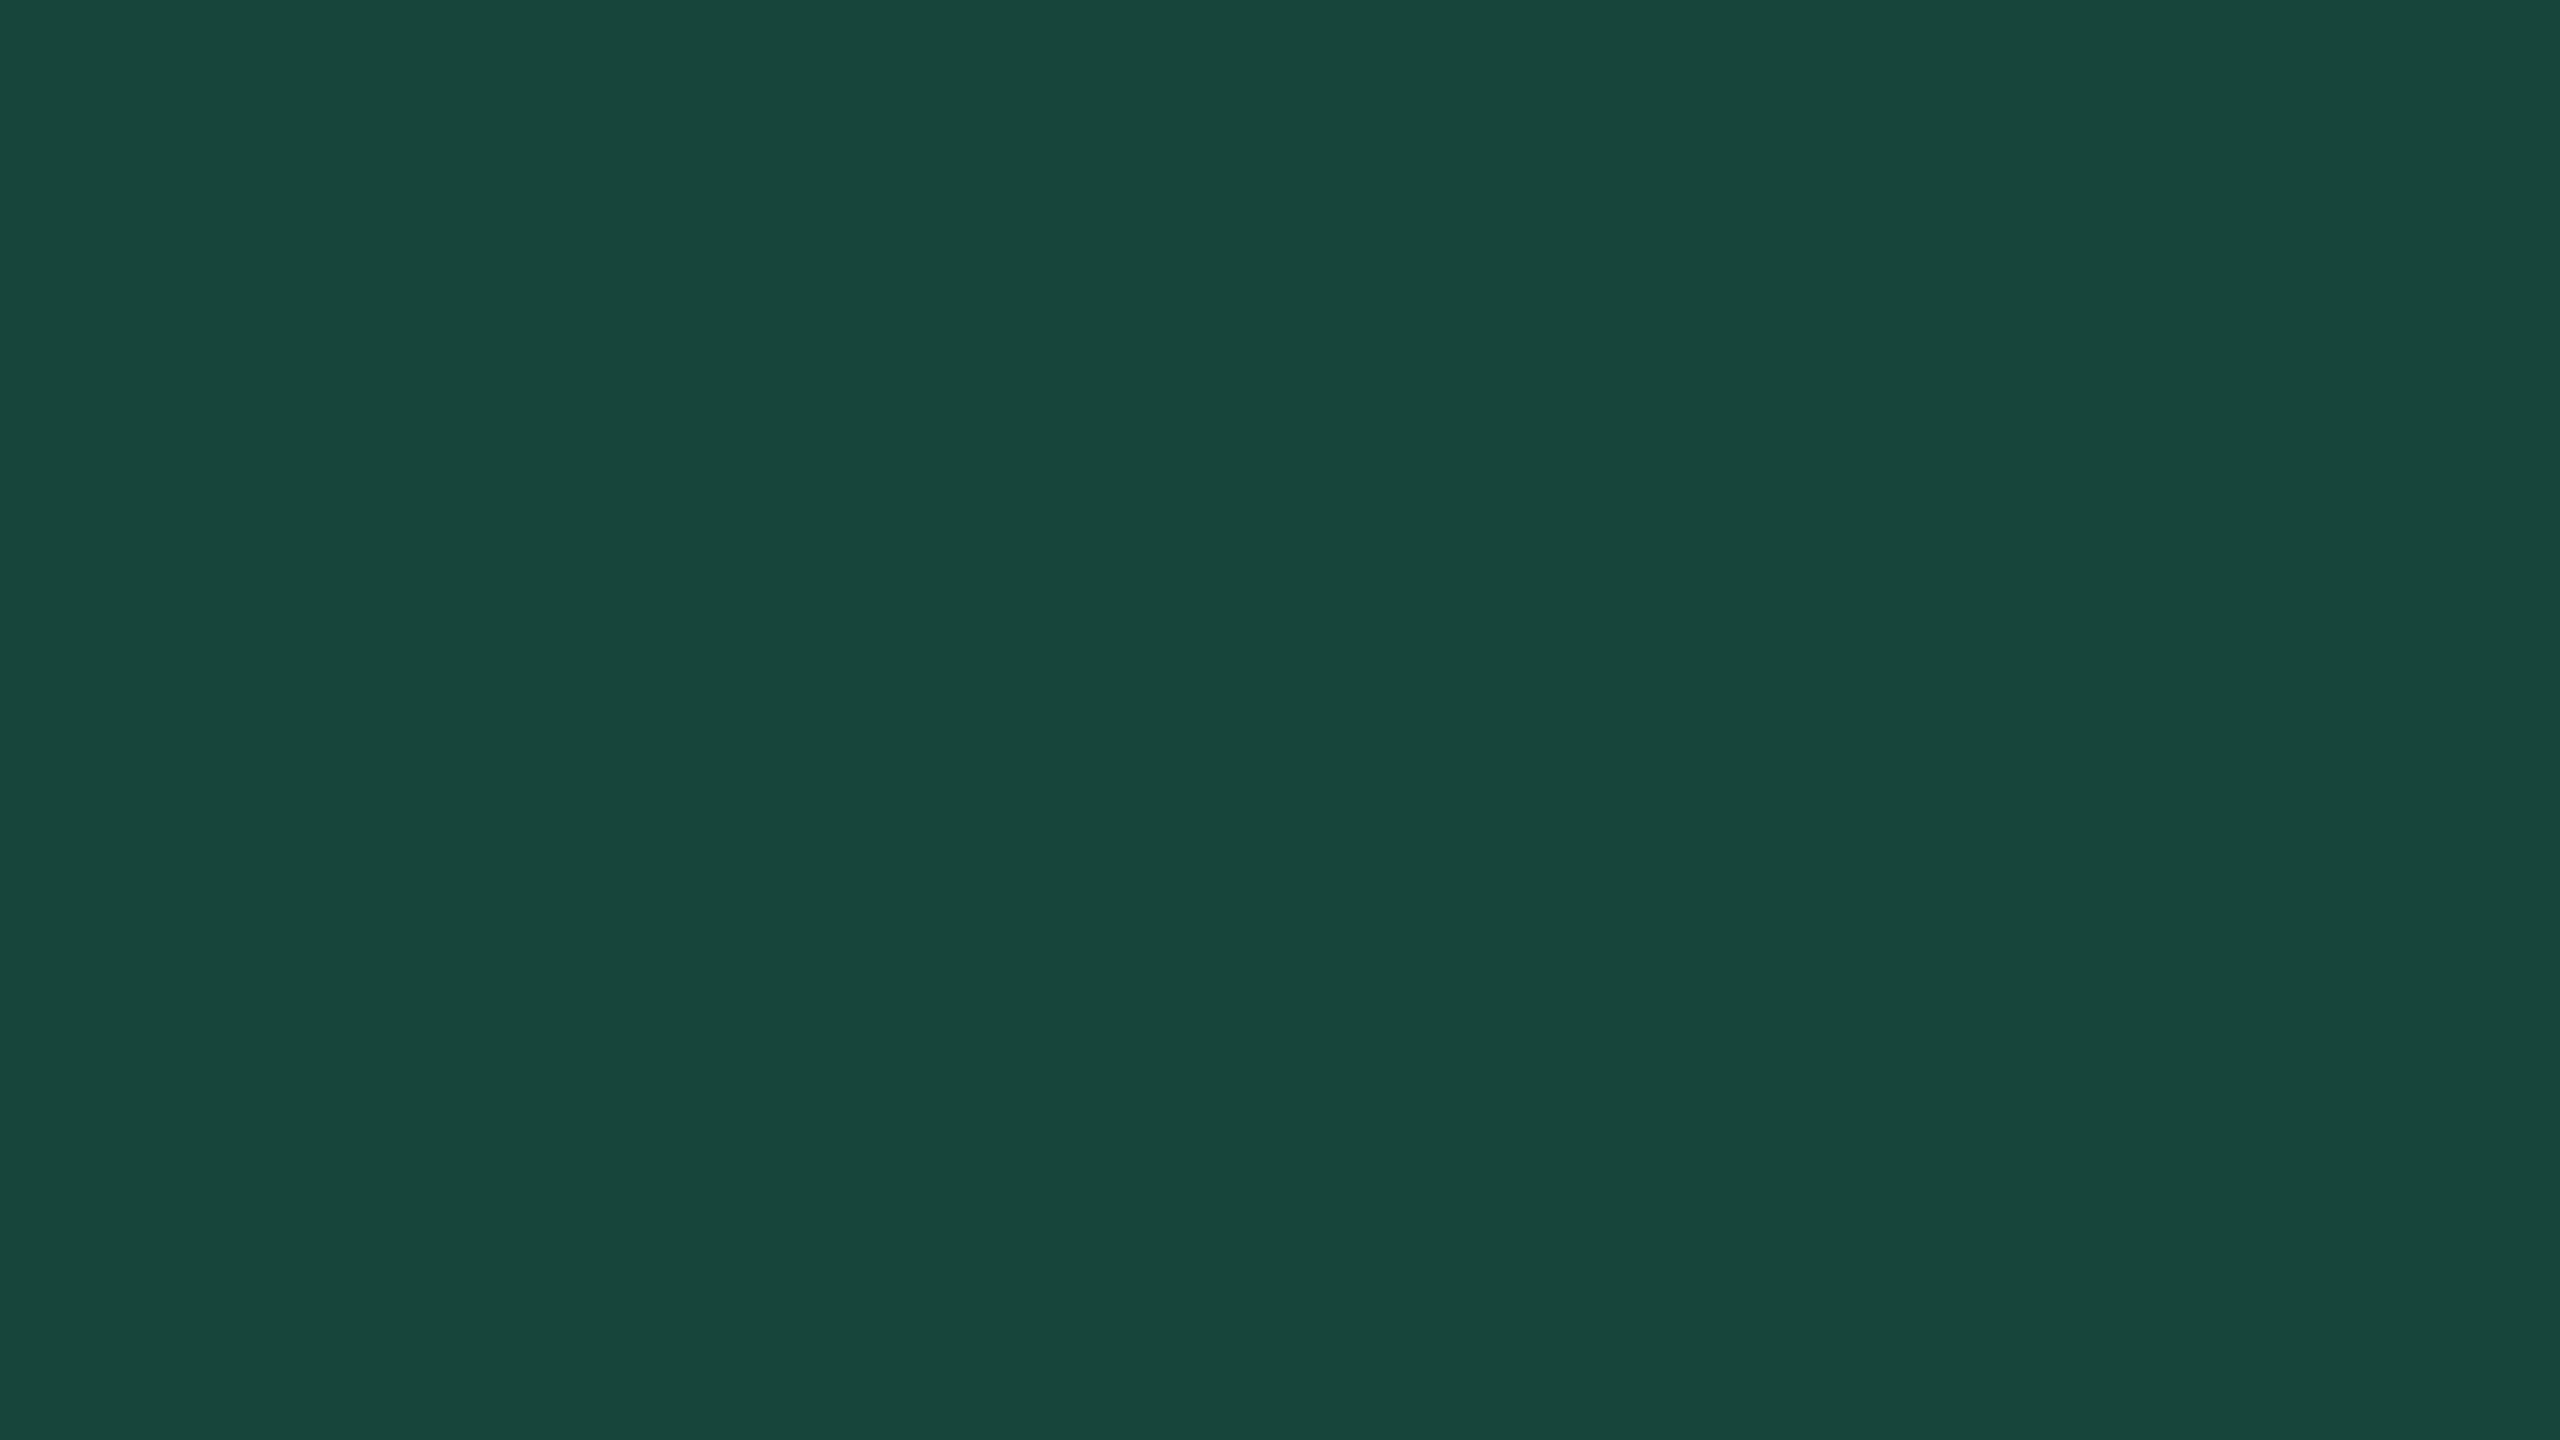 2560x1440 MSU Green Solid Color Background